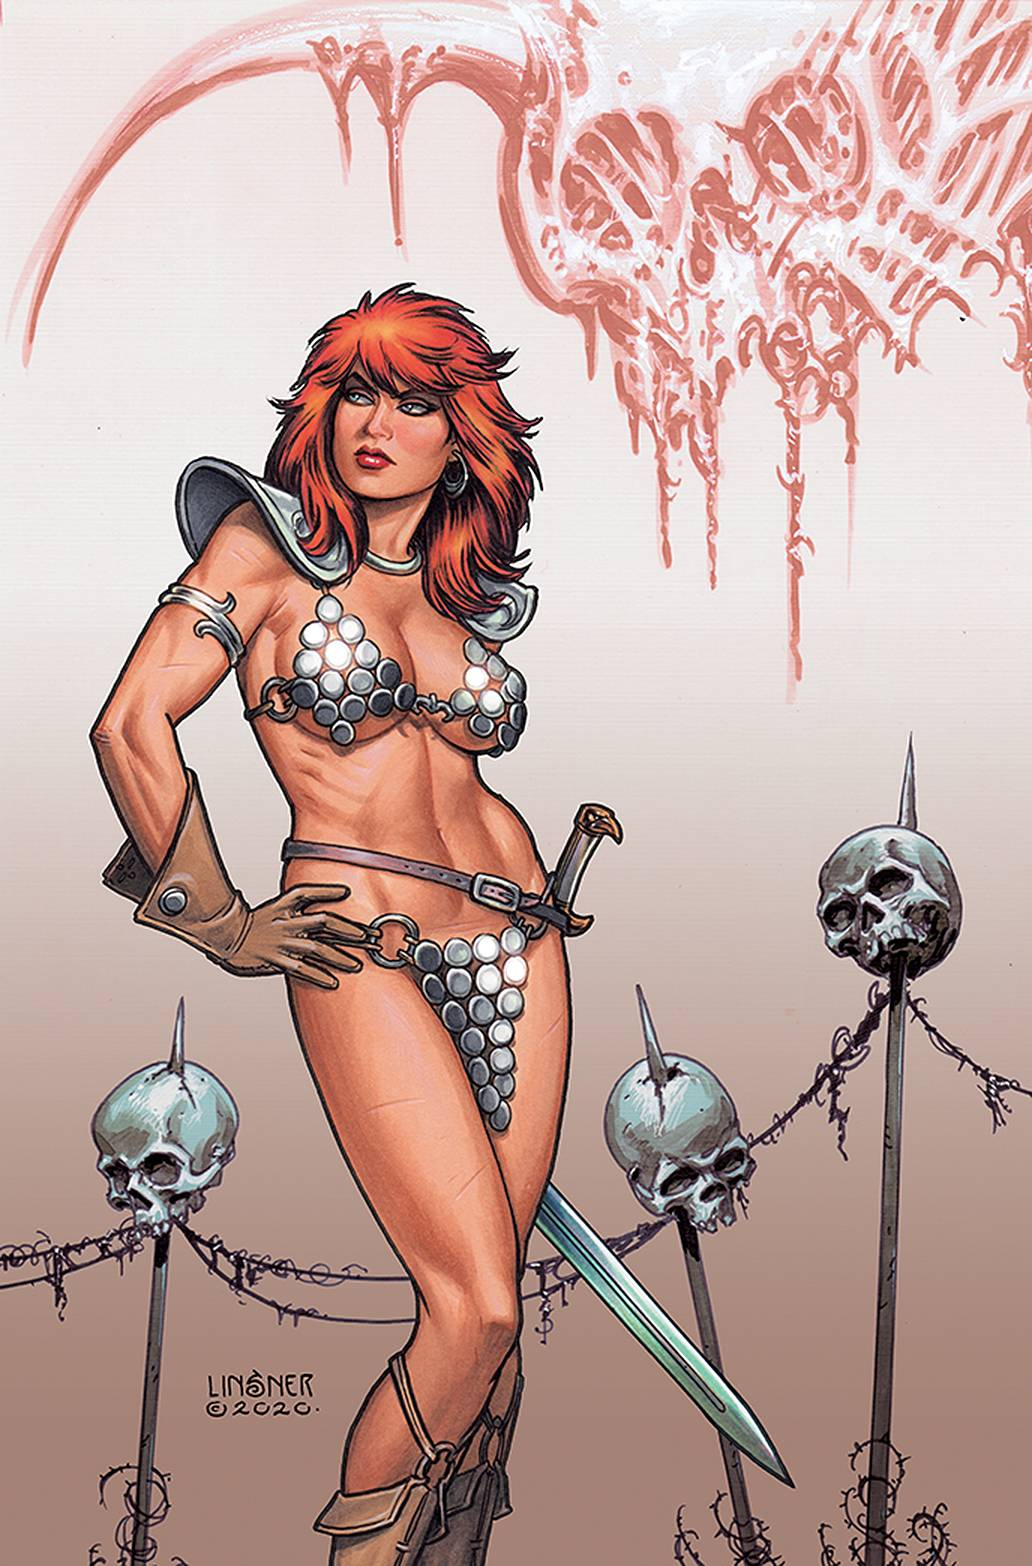 RED SONJA PRICE OF BLOOD #3 LINSNER LTD VIRGIN CVR